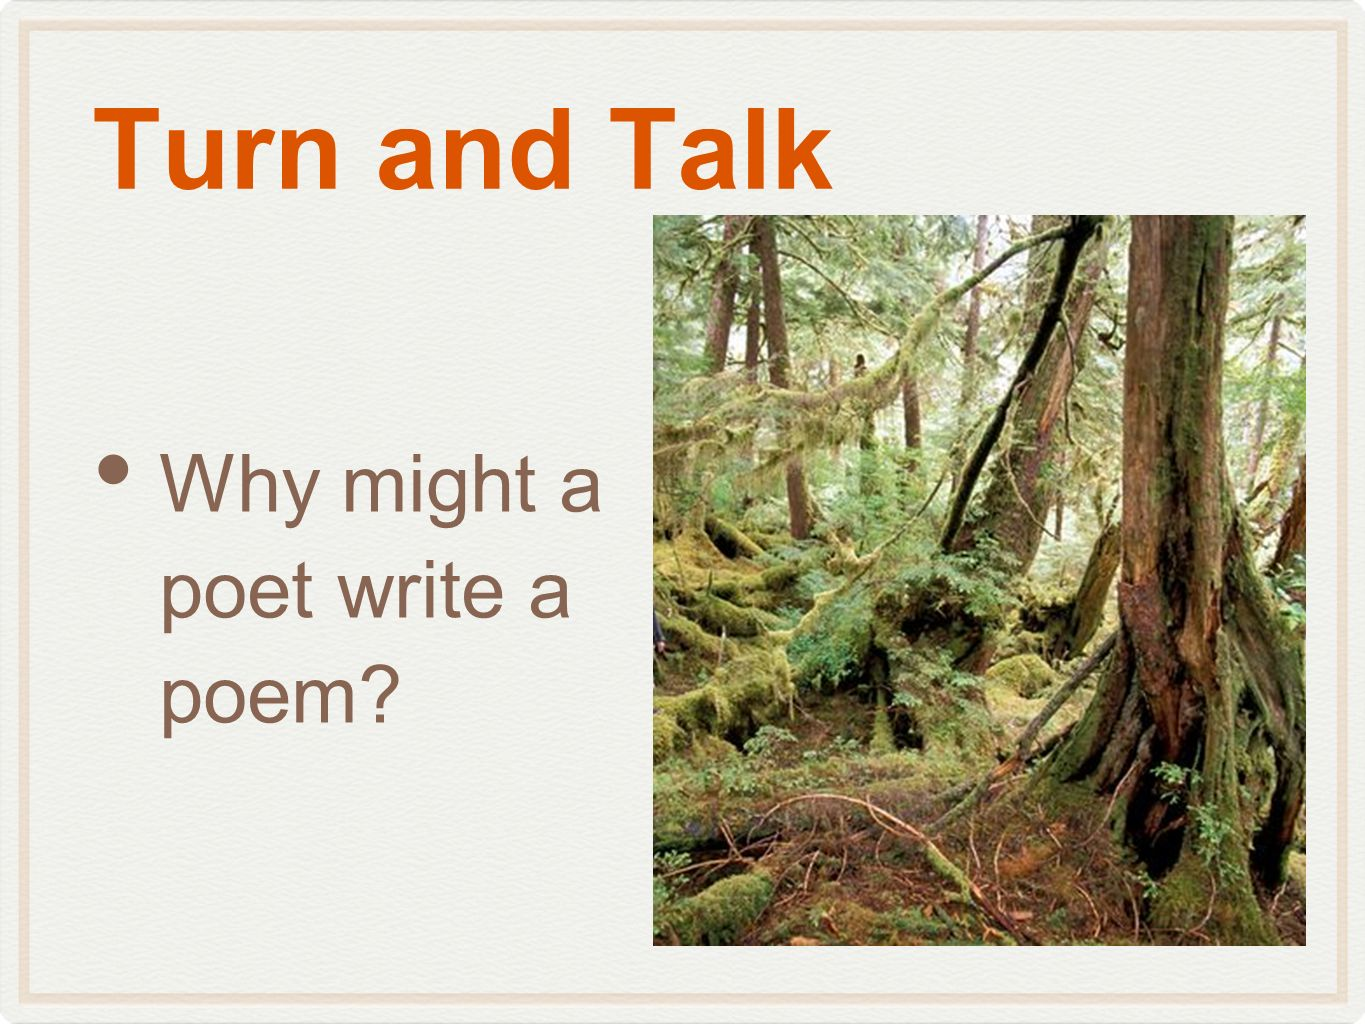 Turn and Talk Why might a poet write a poem?